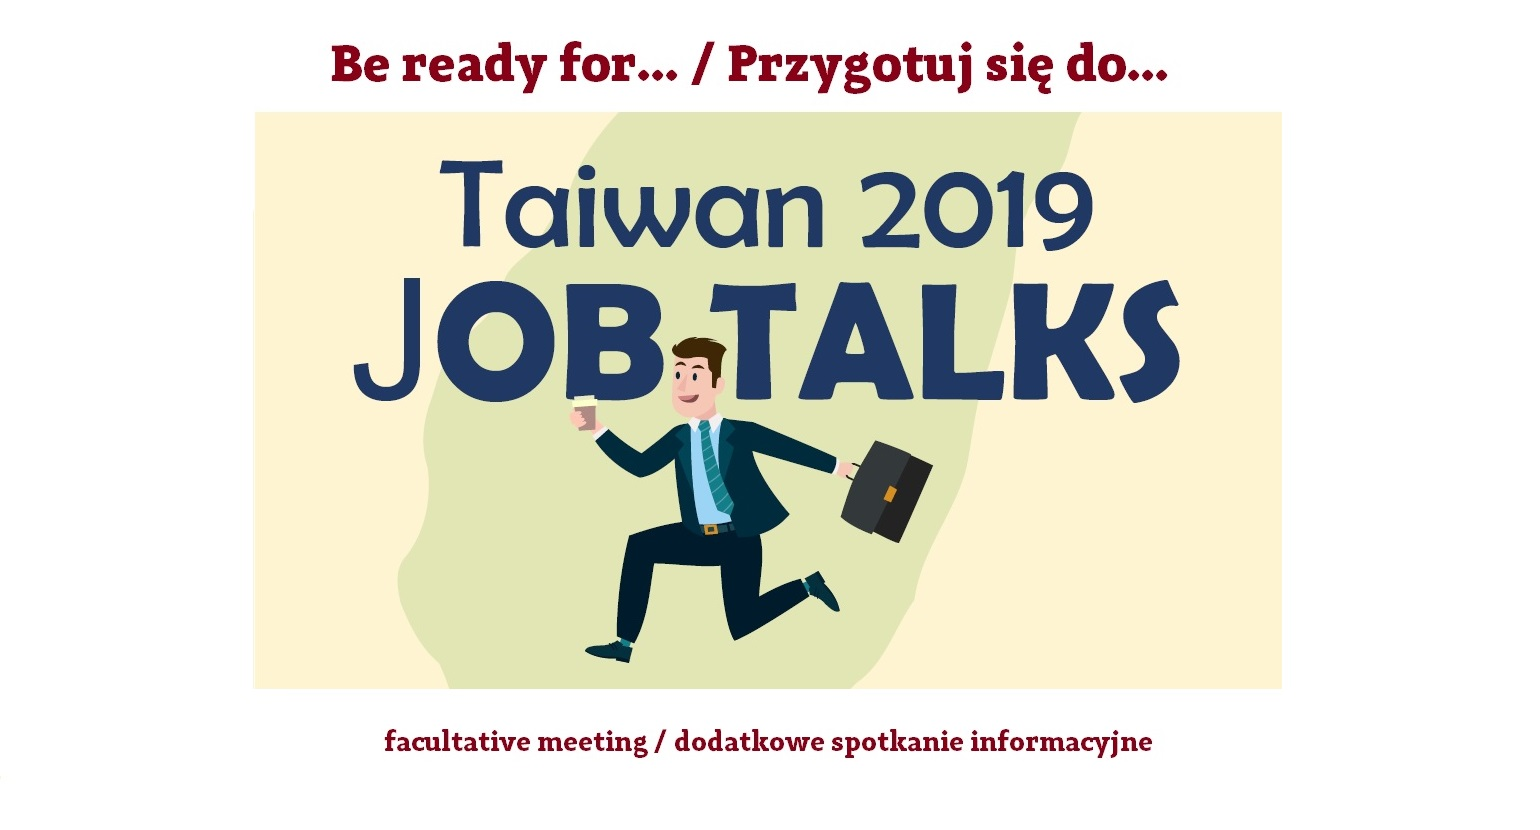 Be ready for Taiwan Job Talks / facultative meeting